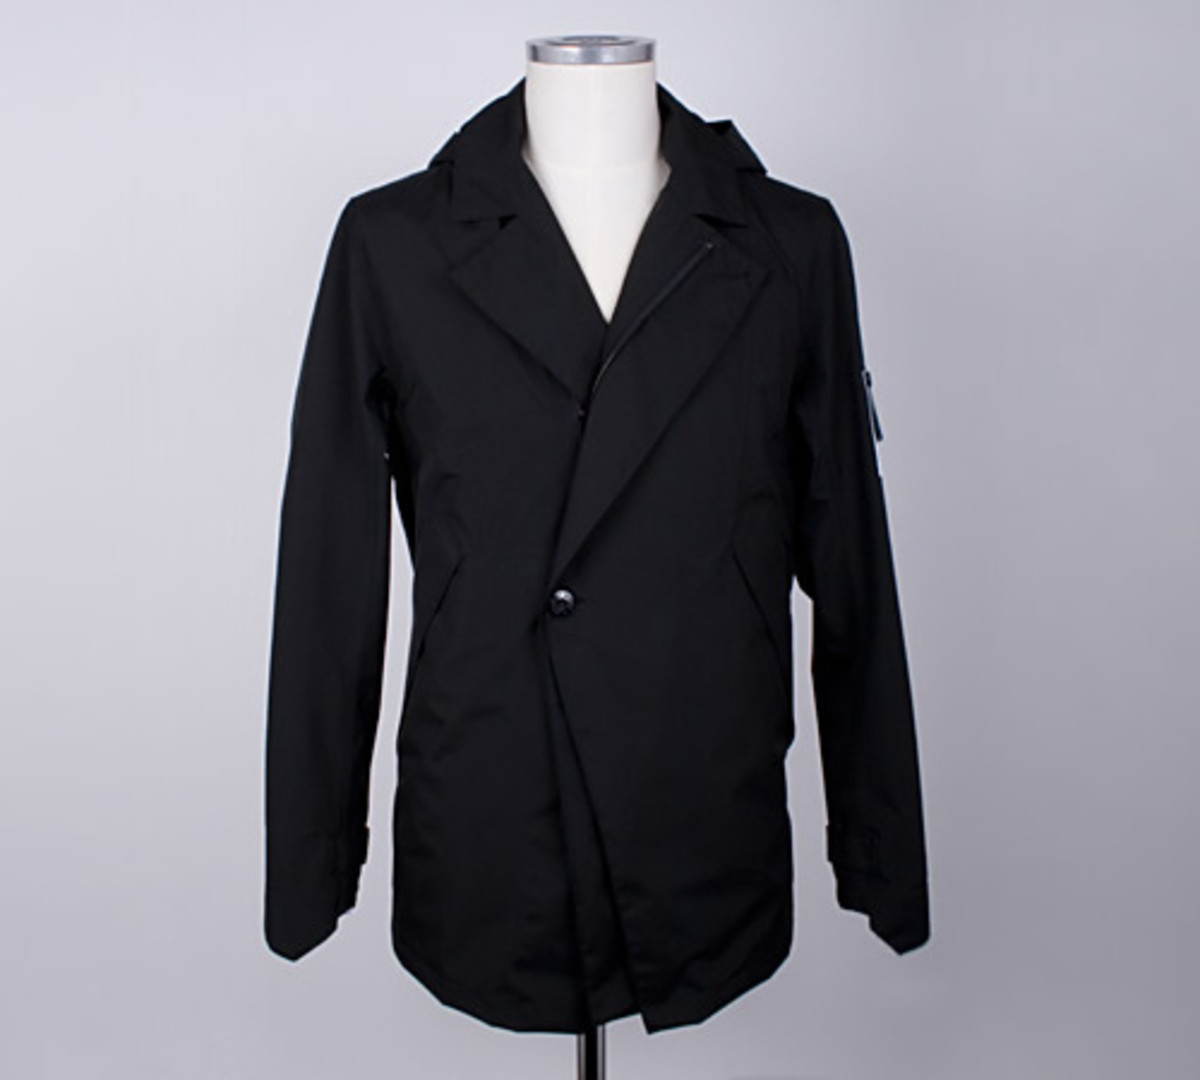 stone island shadow stealth trench coat acquire. Black Bedroom Furniture Sets. Home Design Ideas